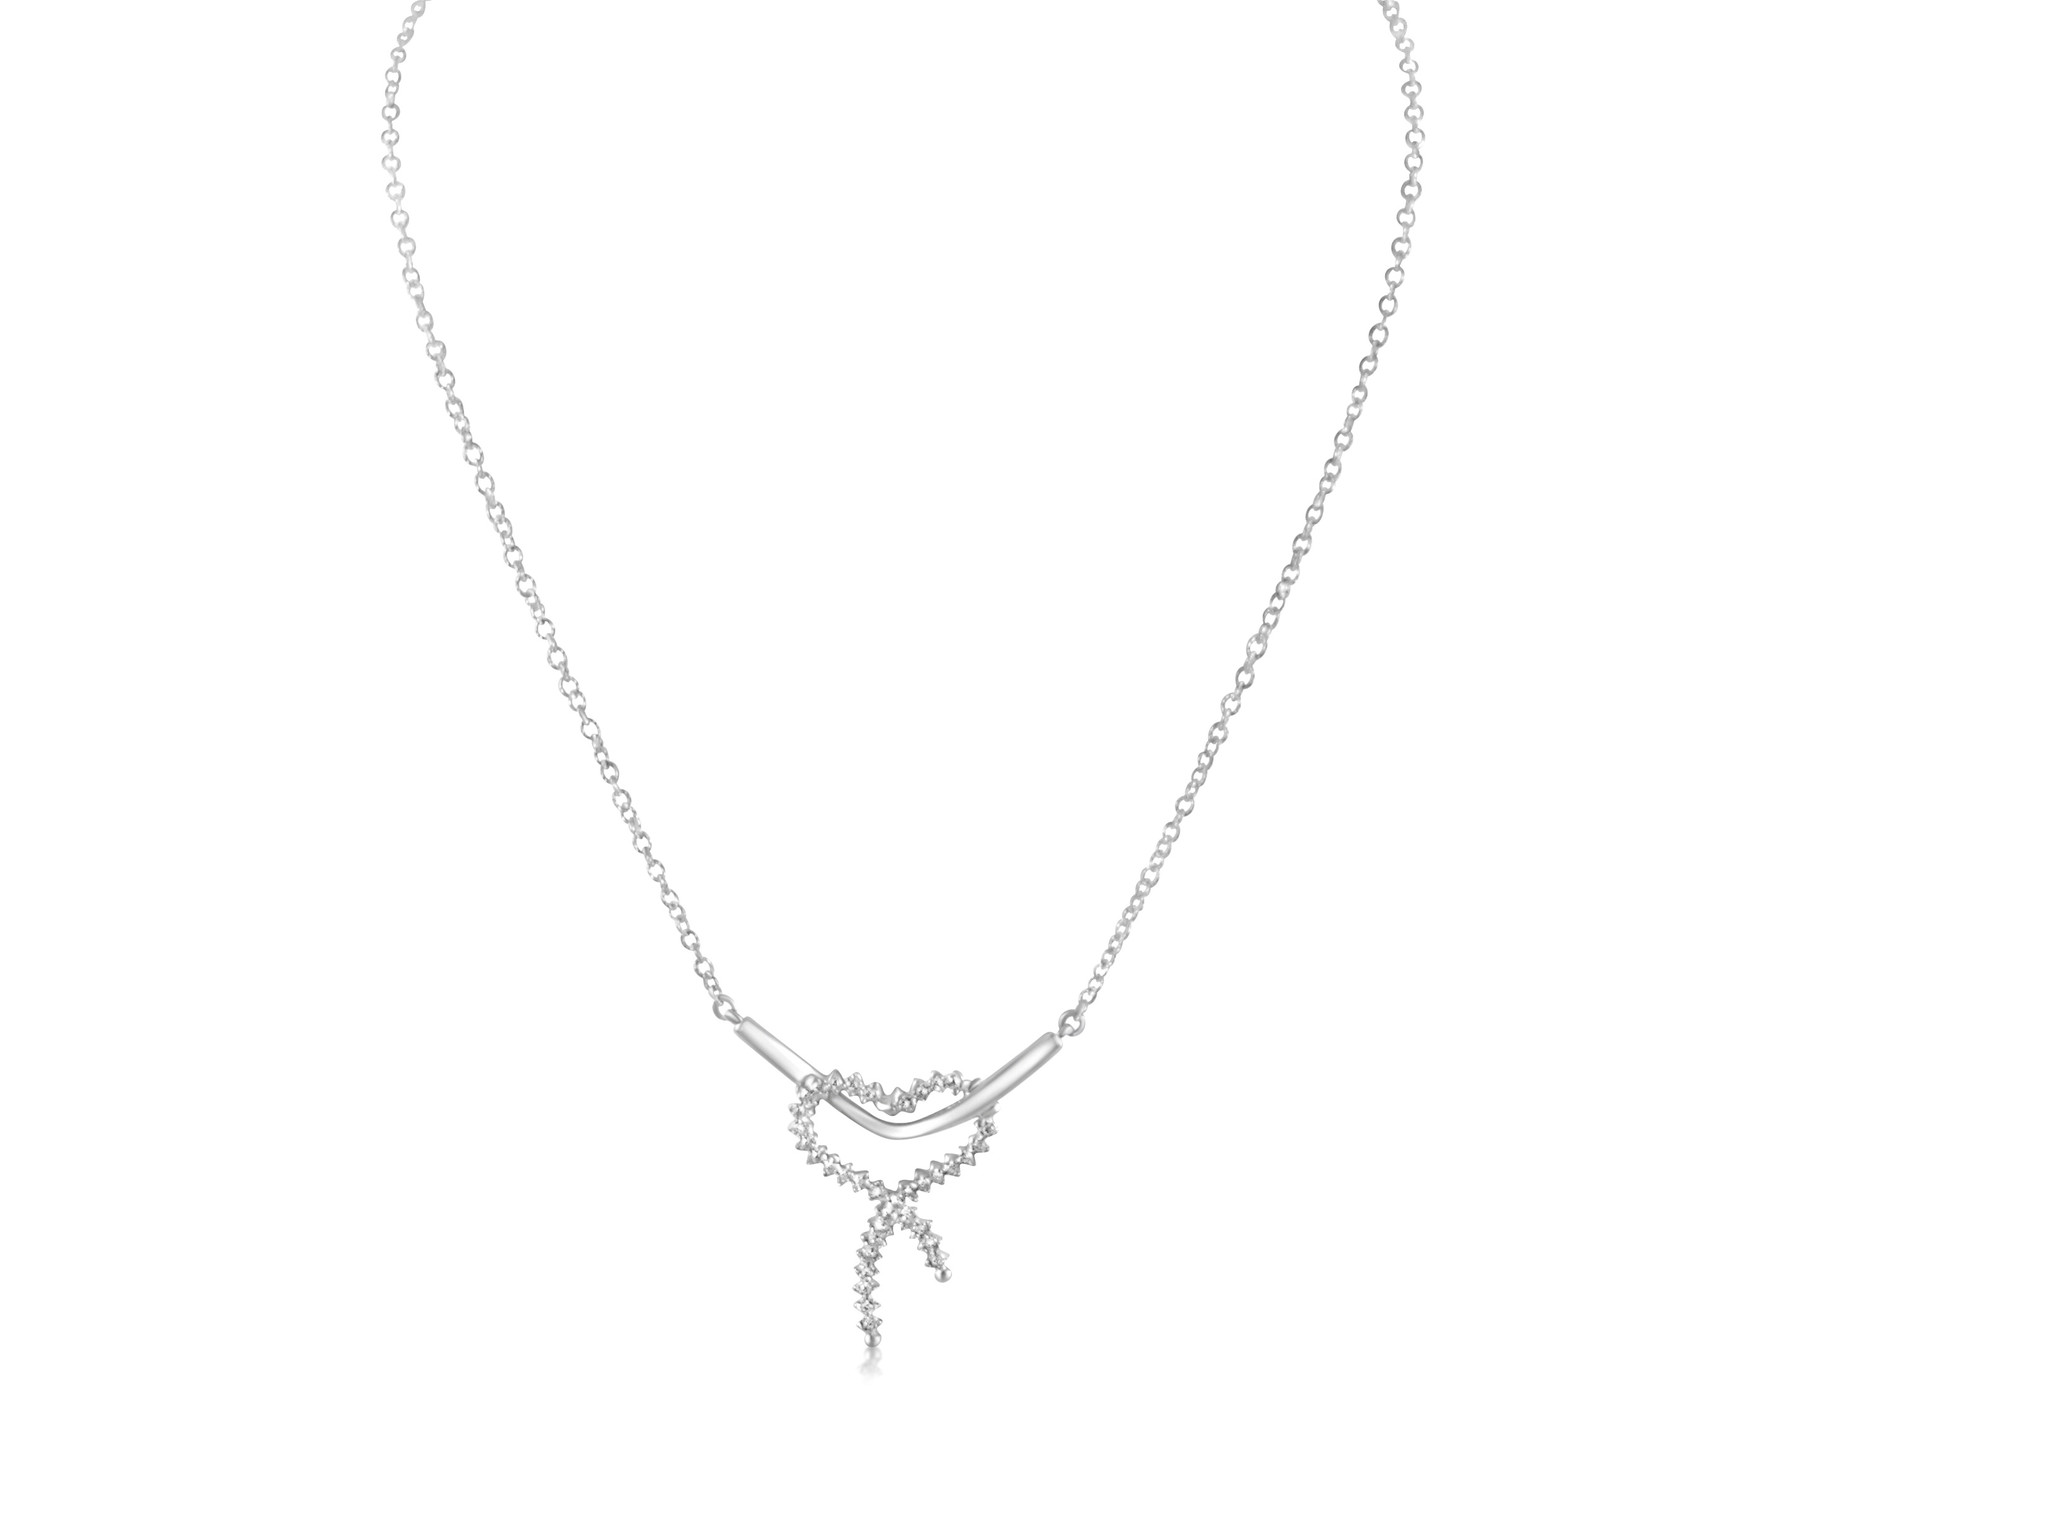 18 karat white gold chain with pendant with zirconia